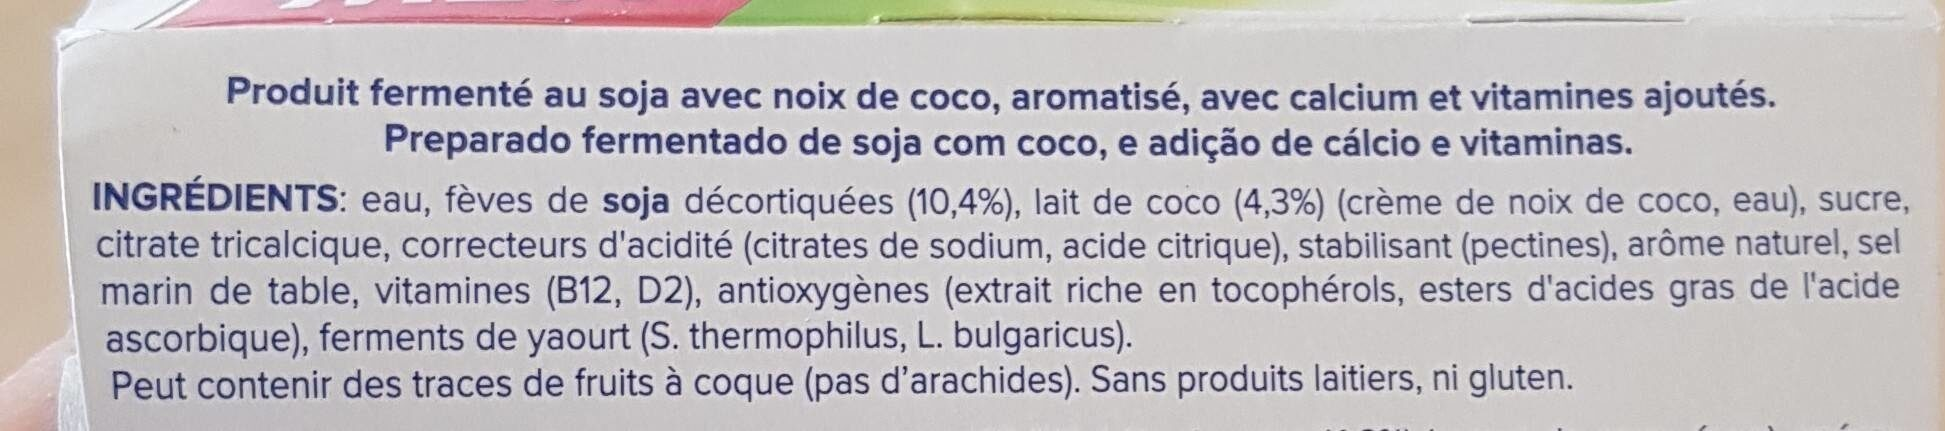 Nature à la noix de coco - Ingredients - fr